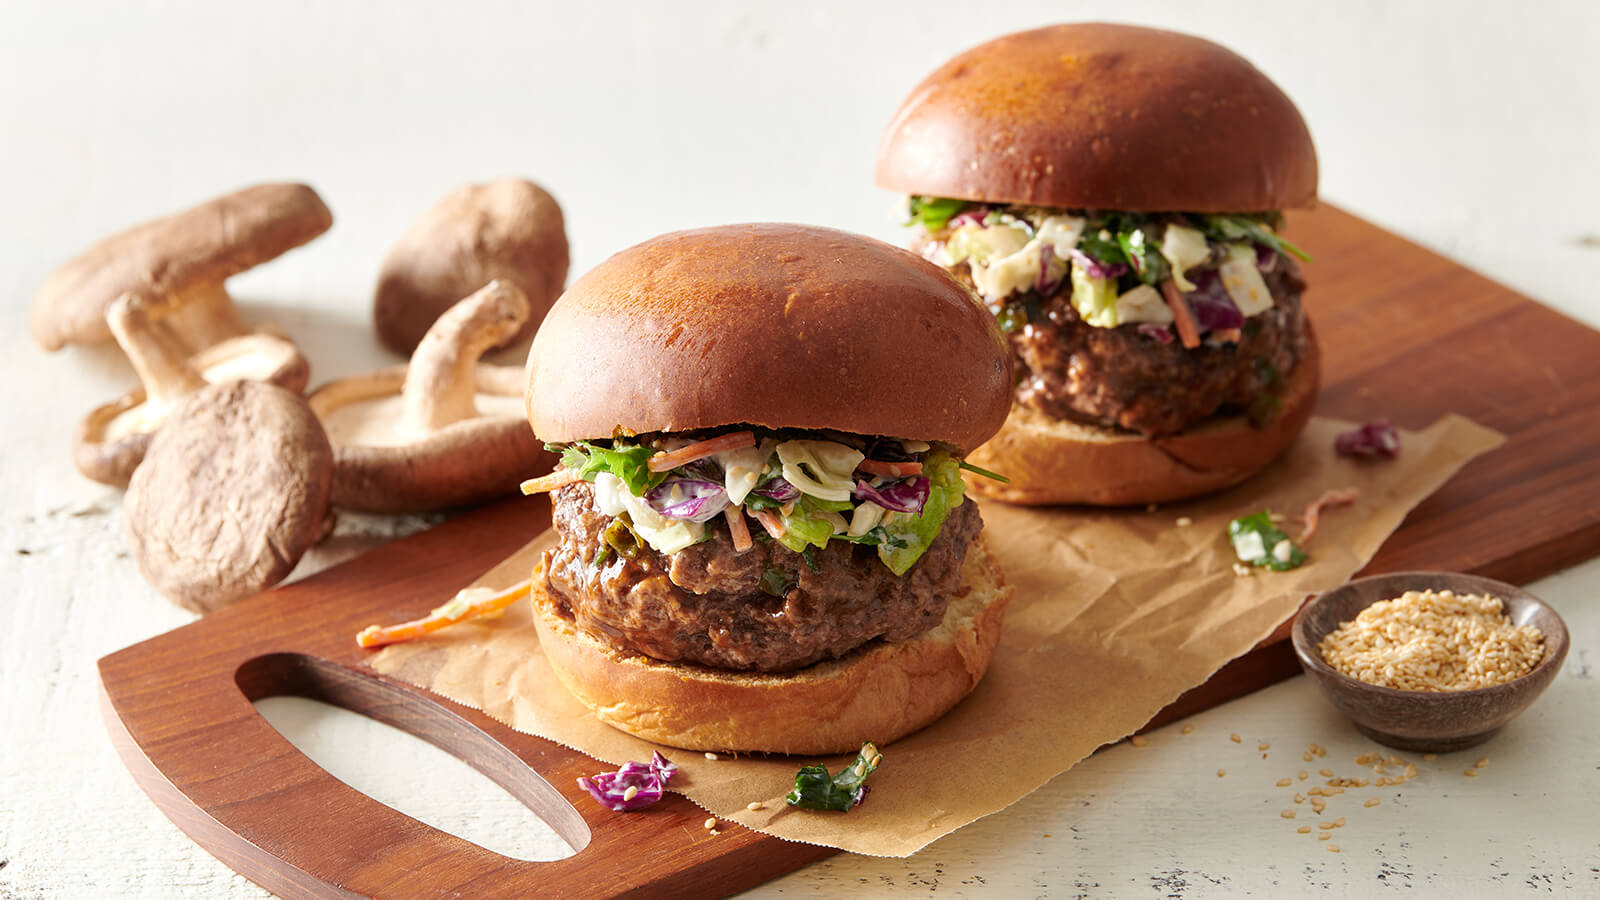 Shiitake Stuffed Burger with Asian Slaw